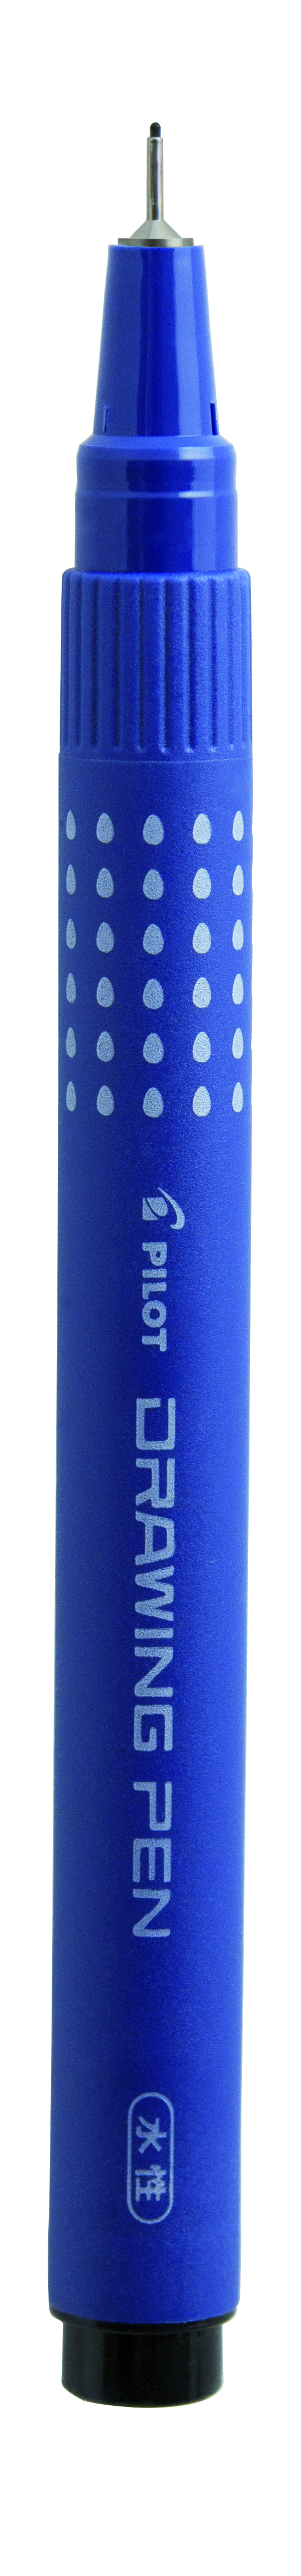 Image of   Filtpen m/hætte Drawing Pen 0,2mm sort - PLT86311